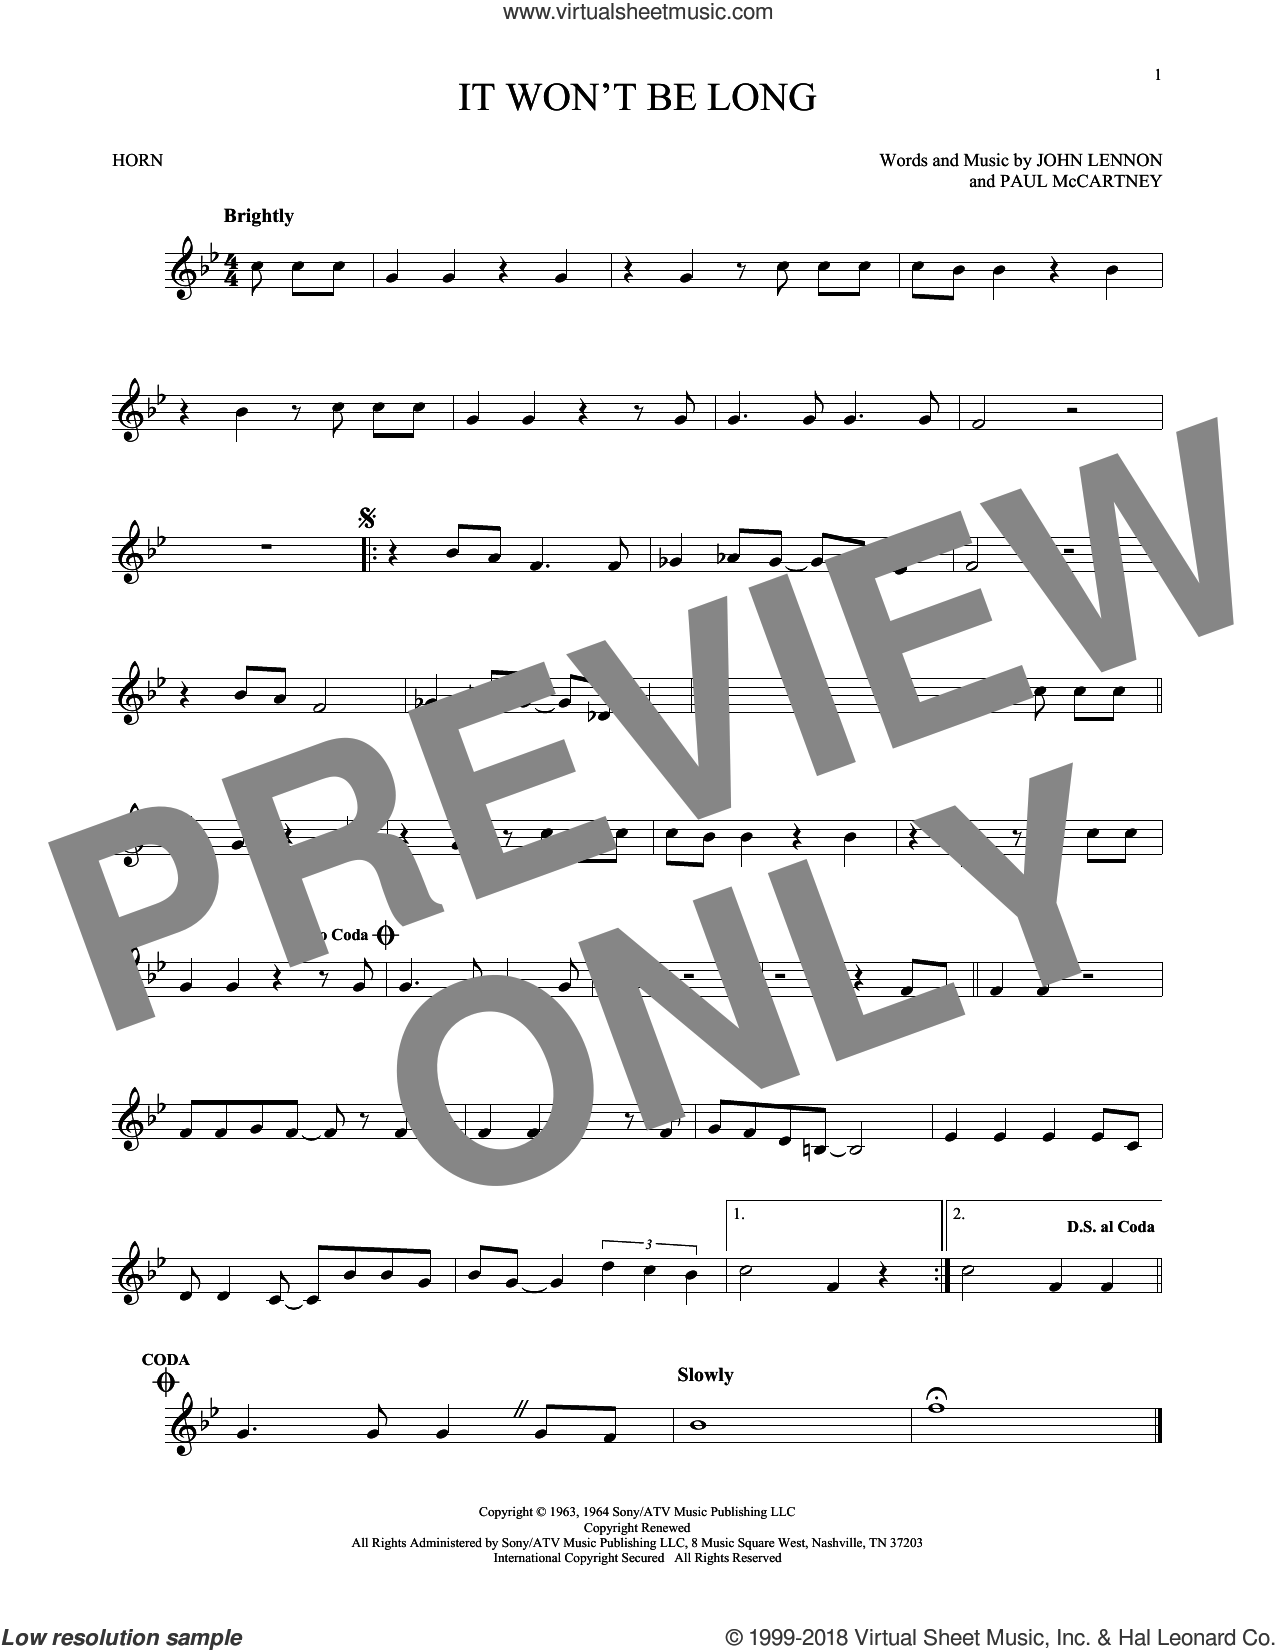 It Won't Be Long sheet music for horn solo by The Beatles, John Lennon and Paul McCartney, intermediate skill level